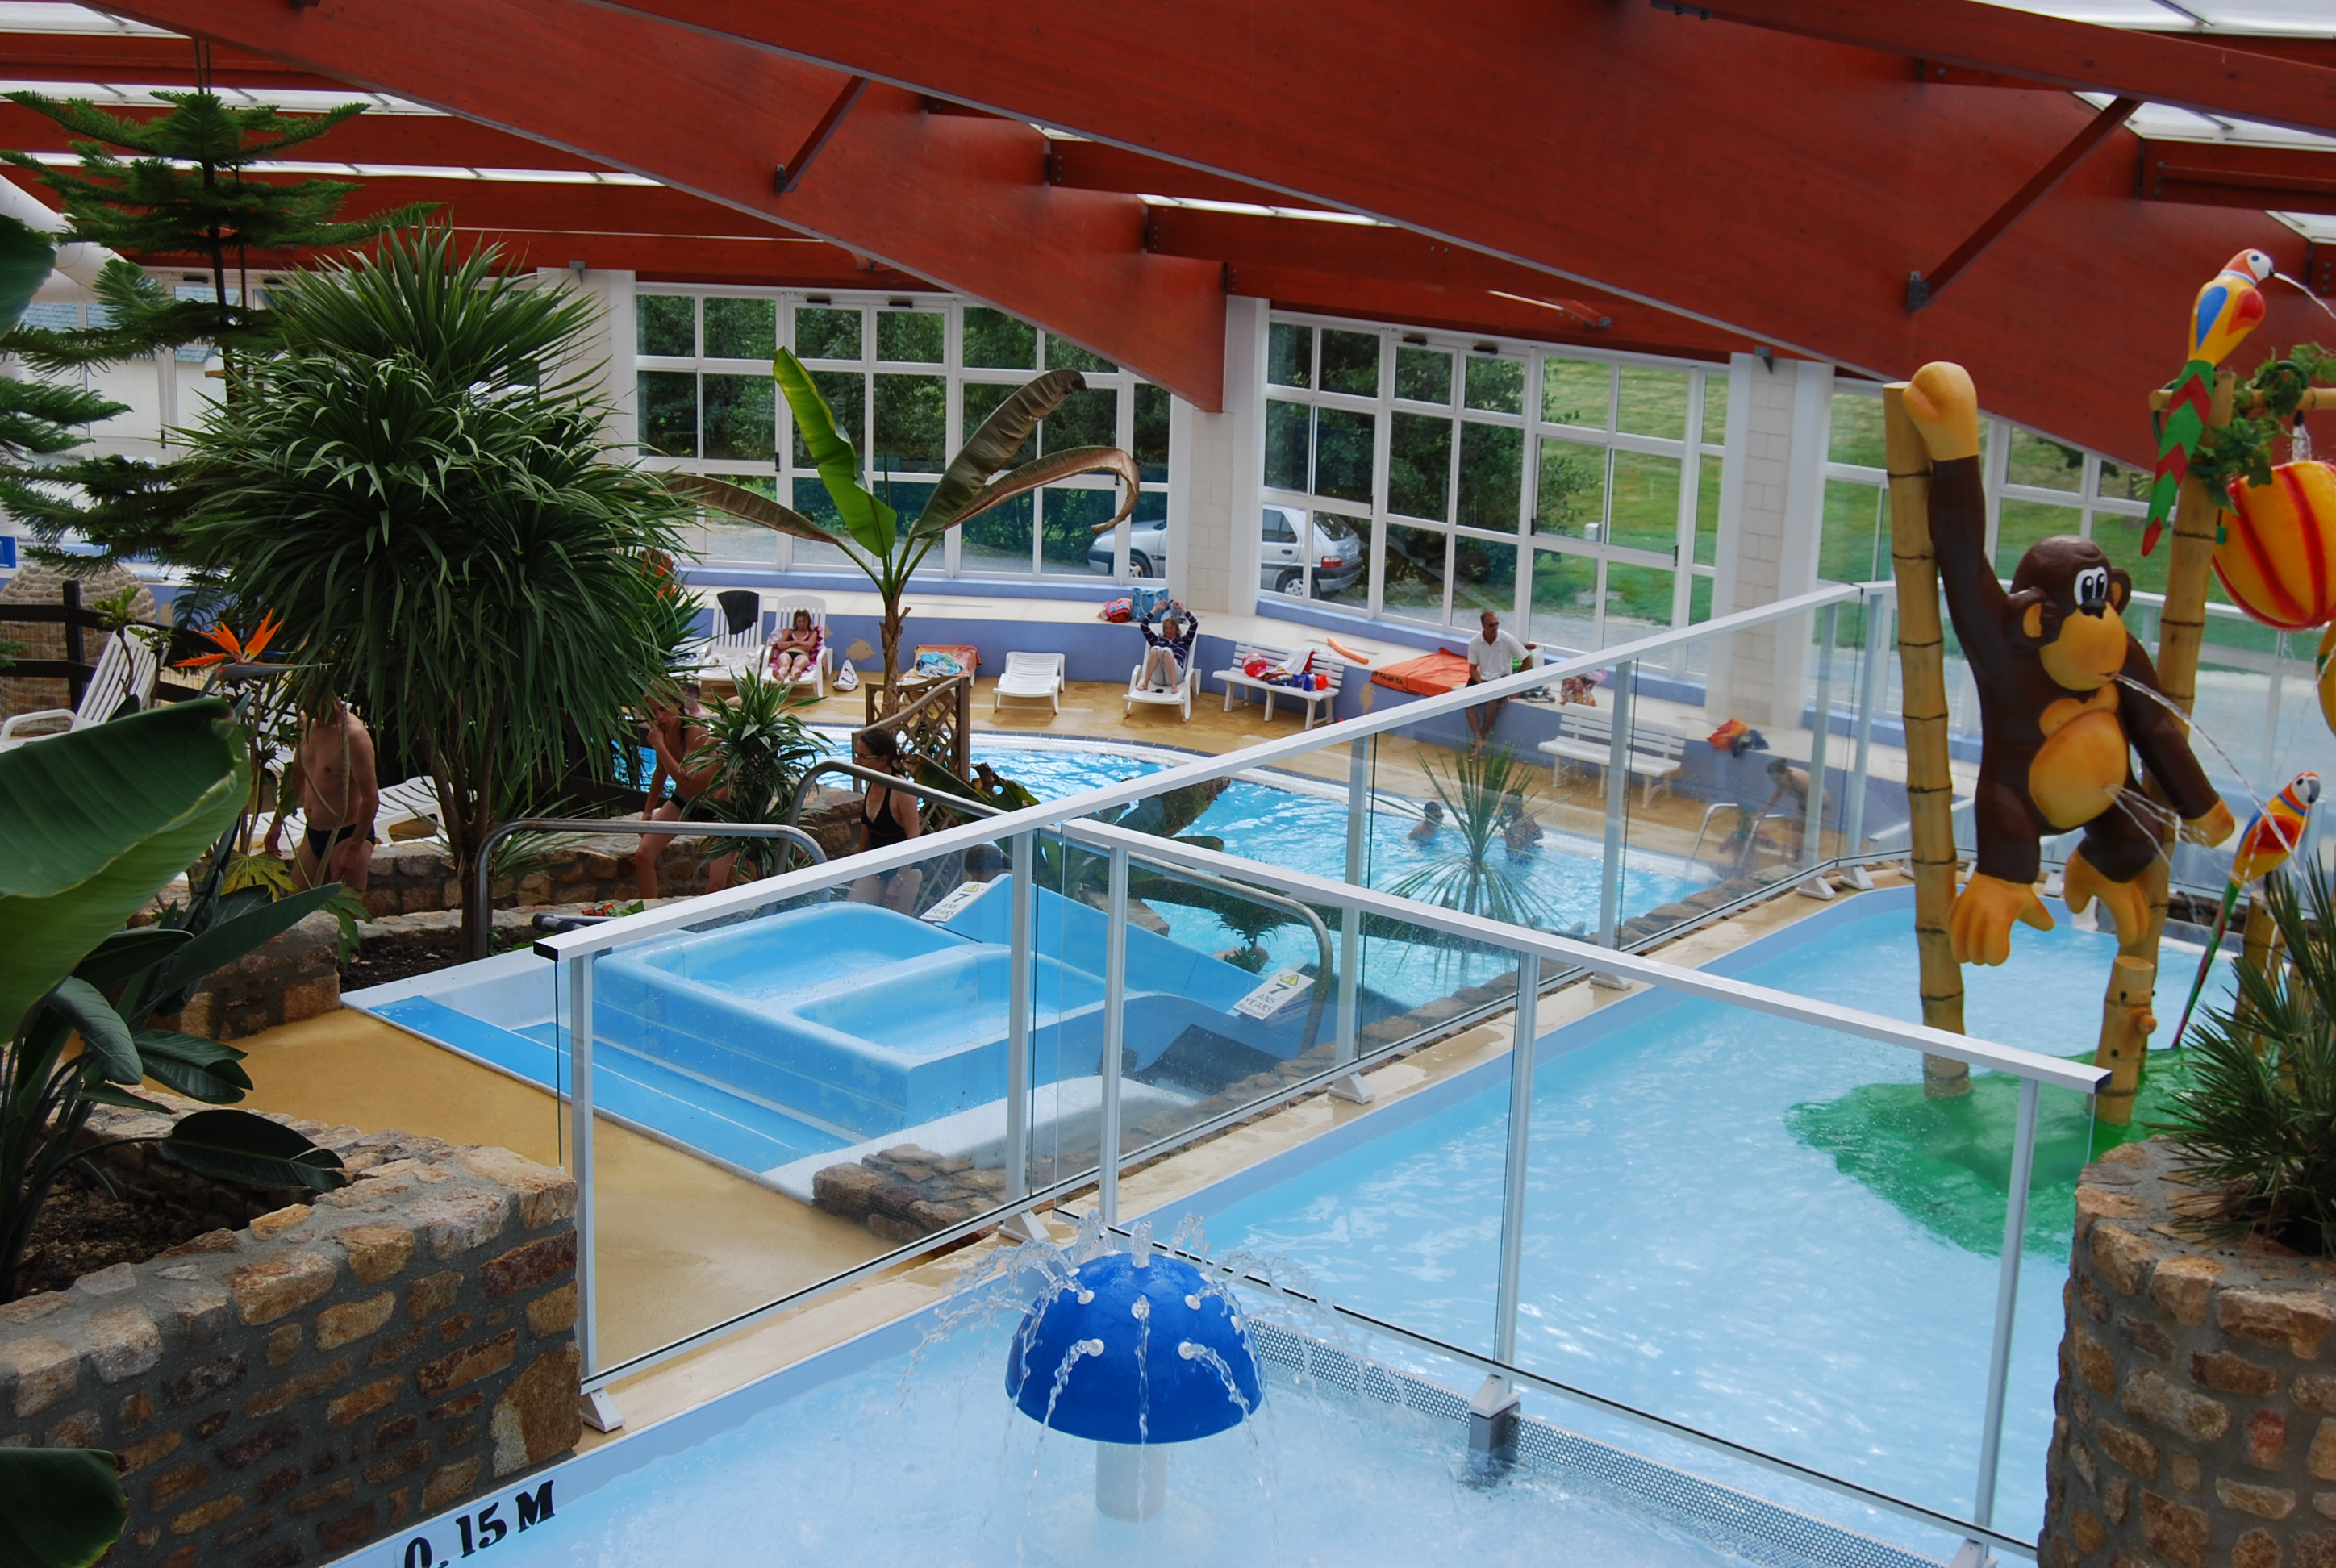 Camping avec piscine couverte en normandie camping en for Piscine couverte